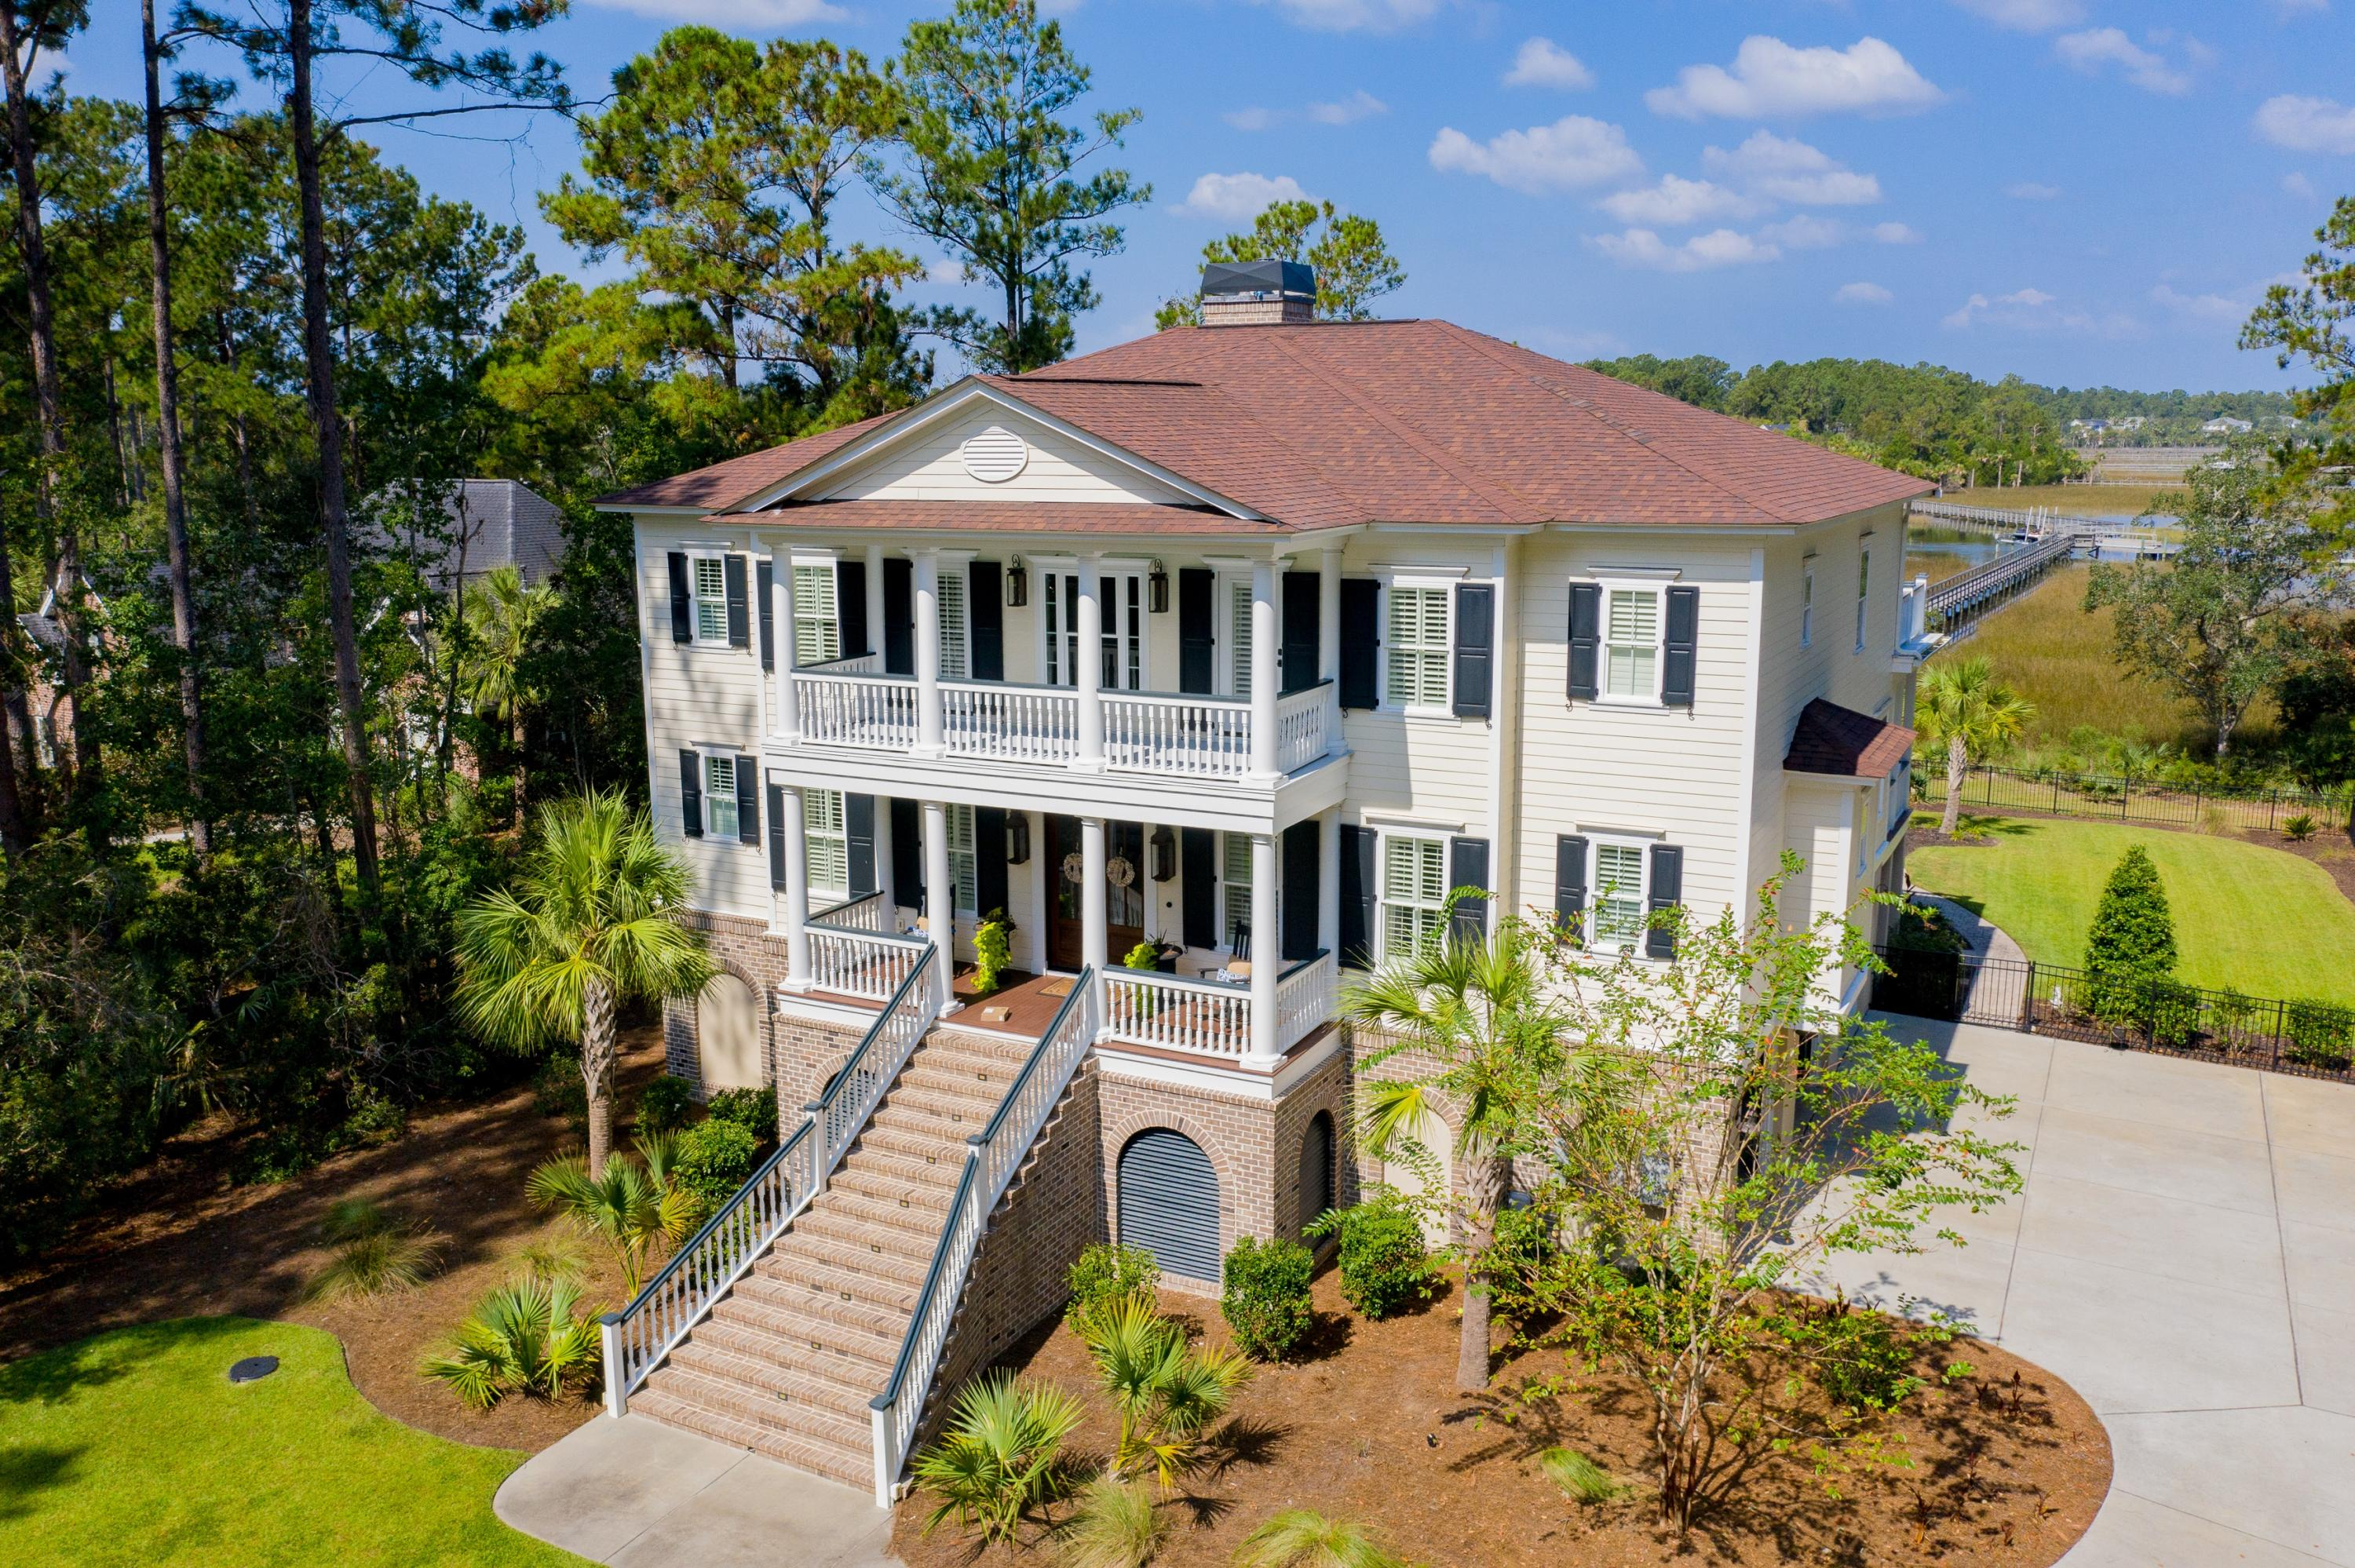 Dunes West Homes For Sale - 3076 Pignatelli, Mount Pleasant, SC - 3